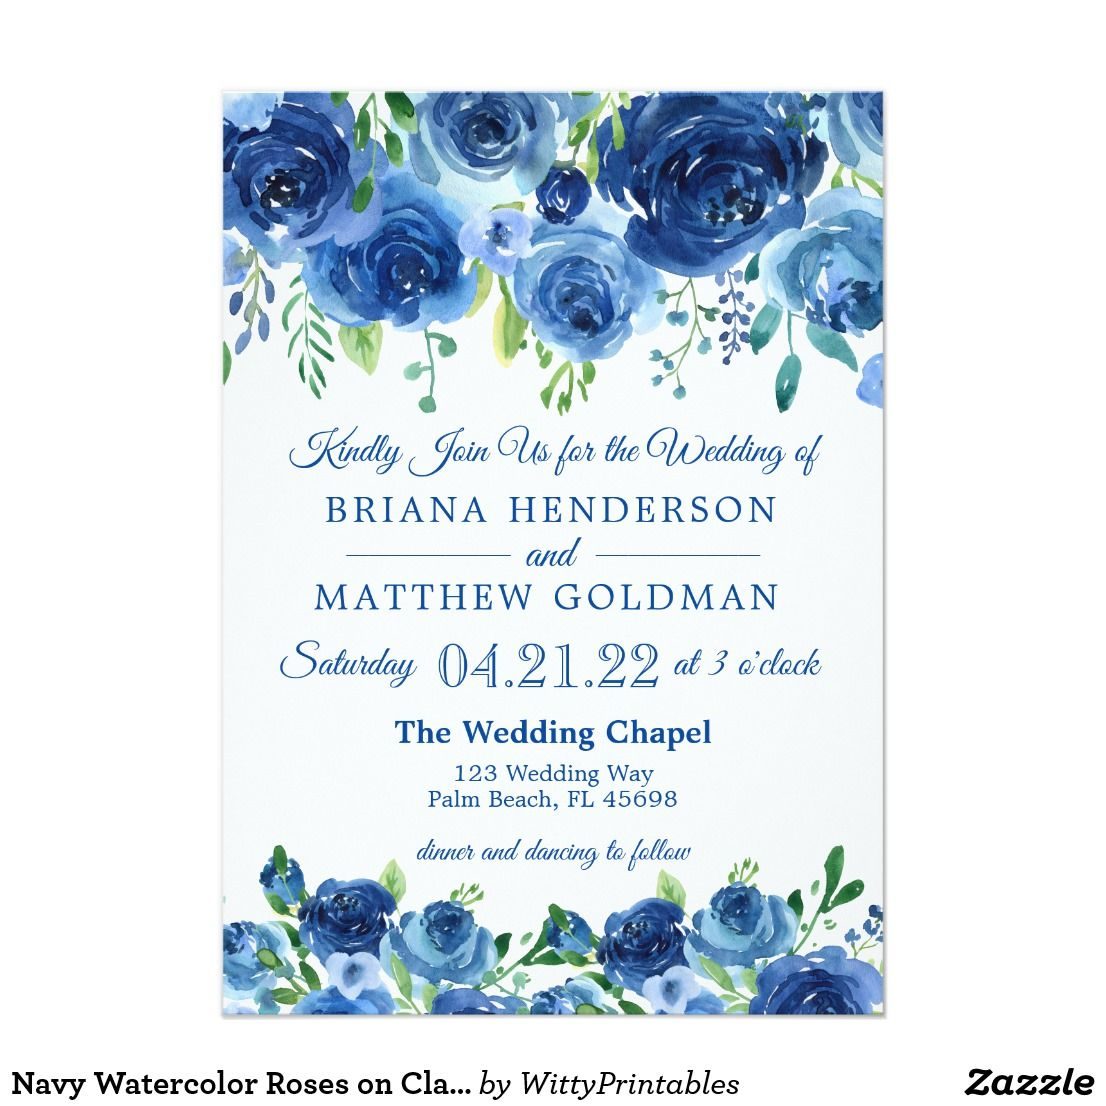 Small Ceremony Big Reception Invitations: Navy Watercolor Roses On Classic White Wedding Invitation